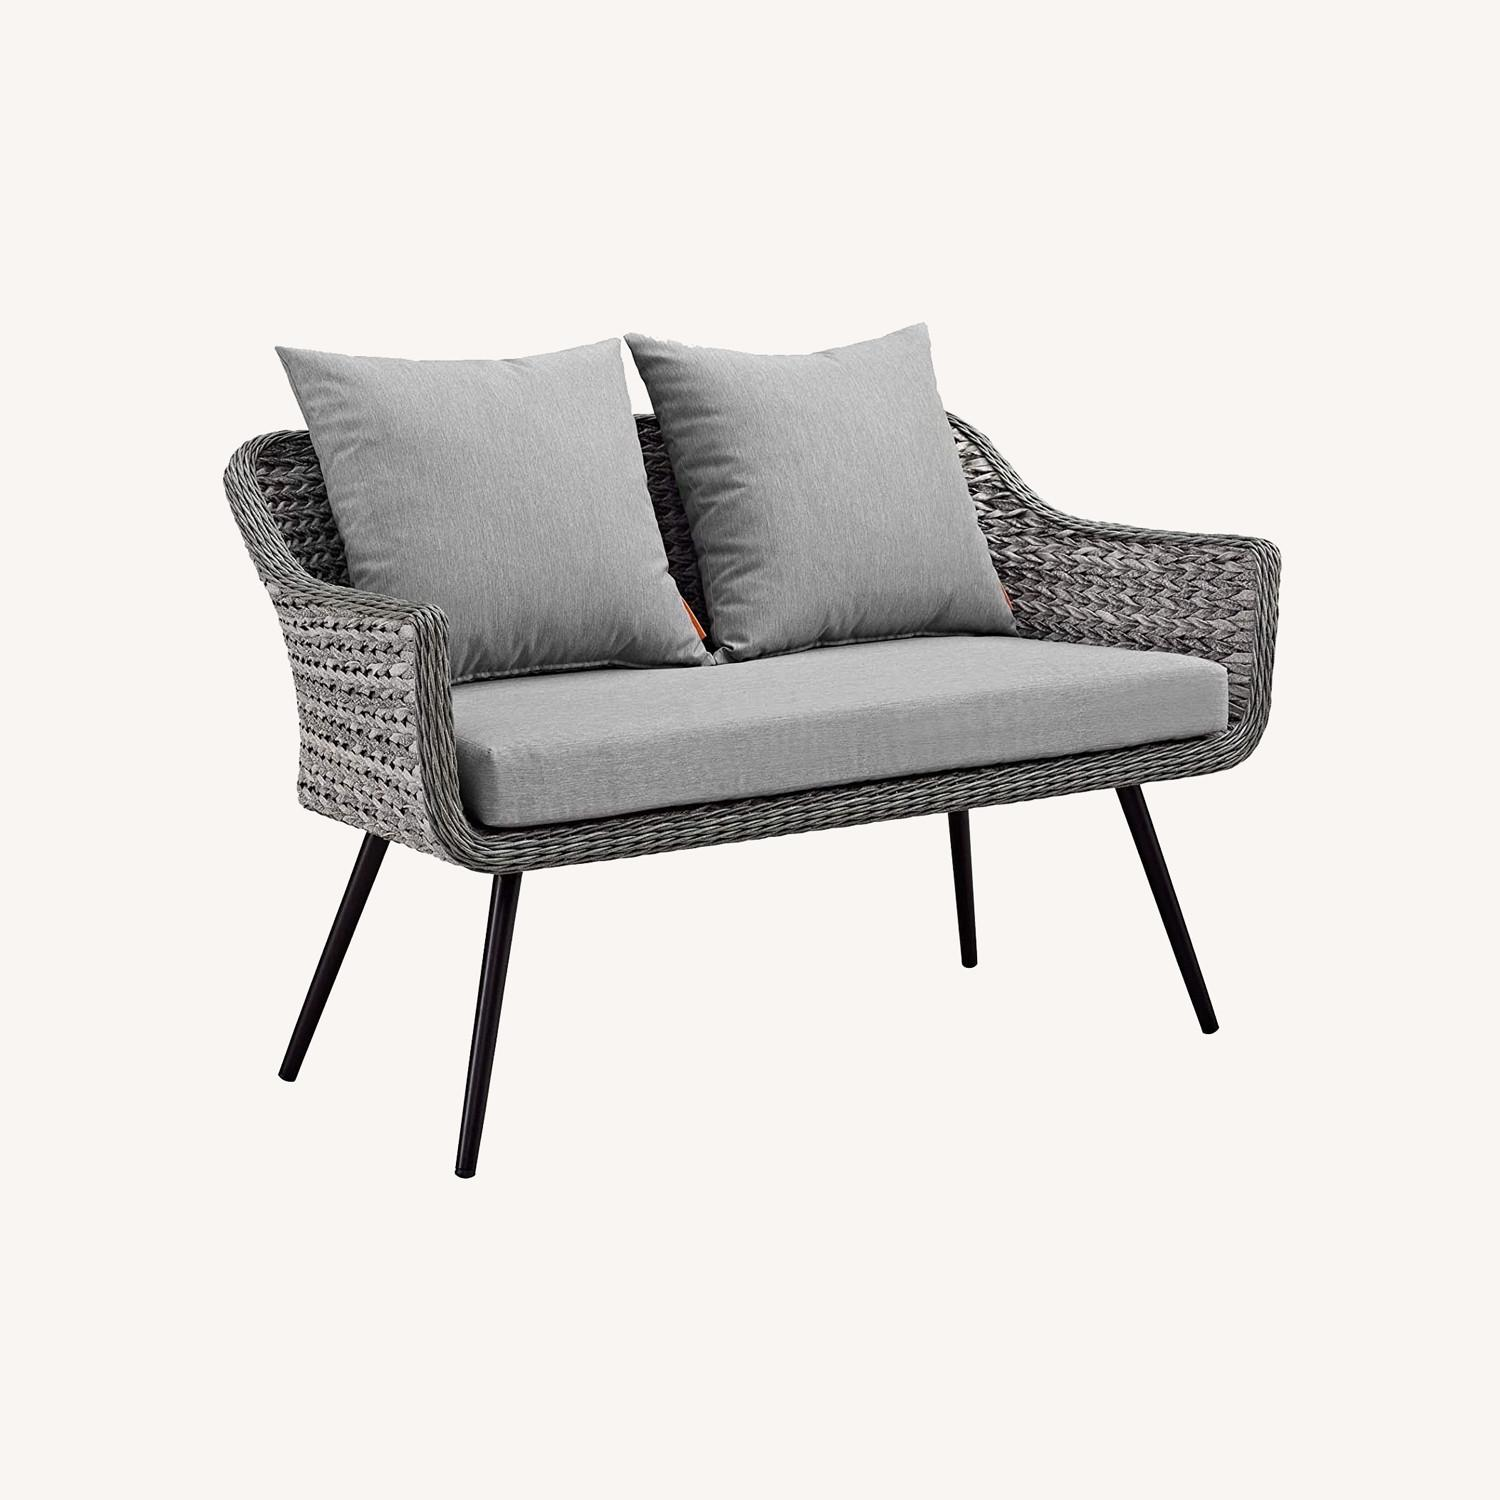 Outdoor Loveseat In Gray-On-Gray Tone Finish - image-6